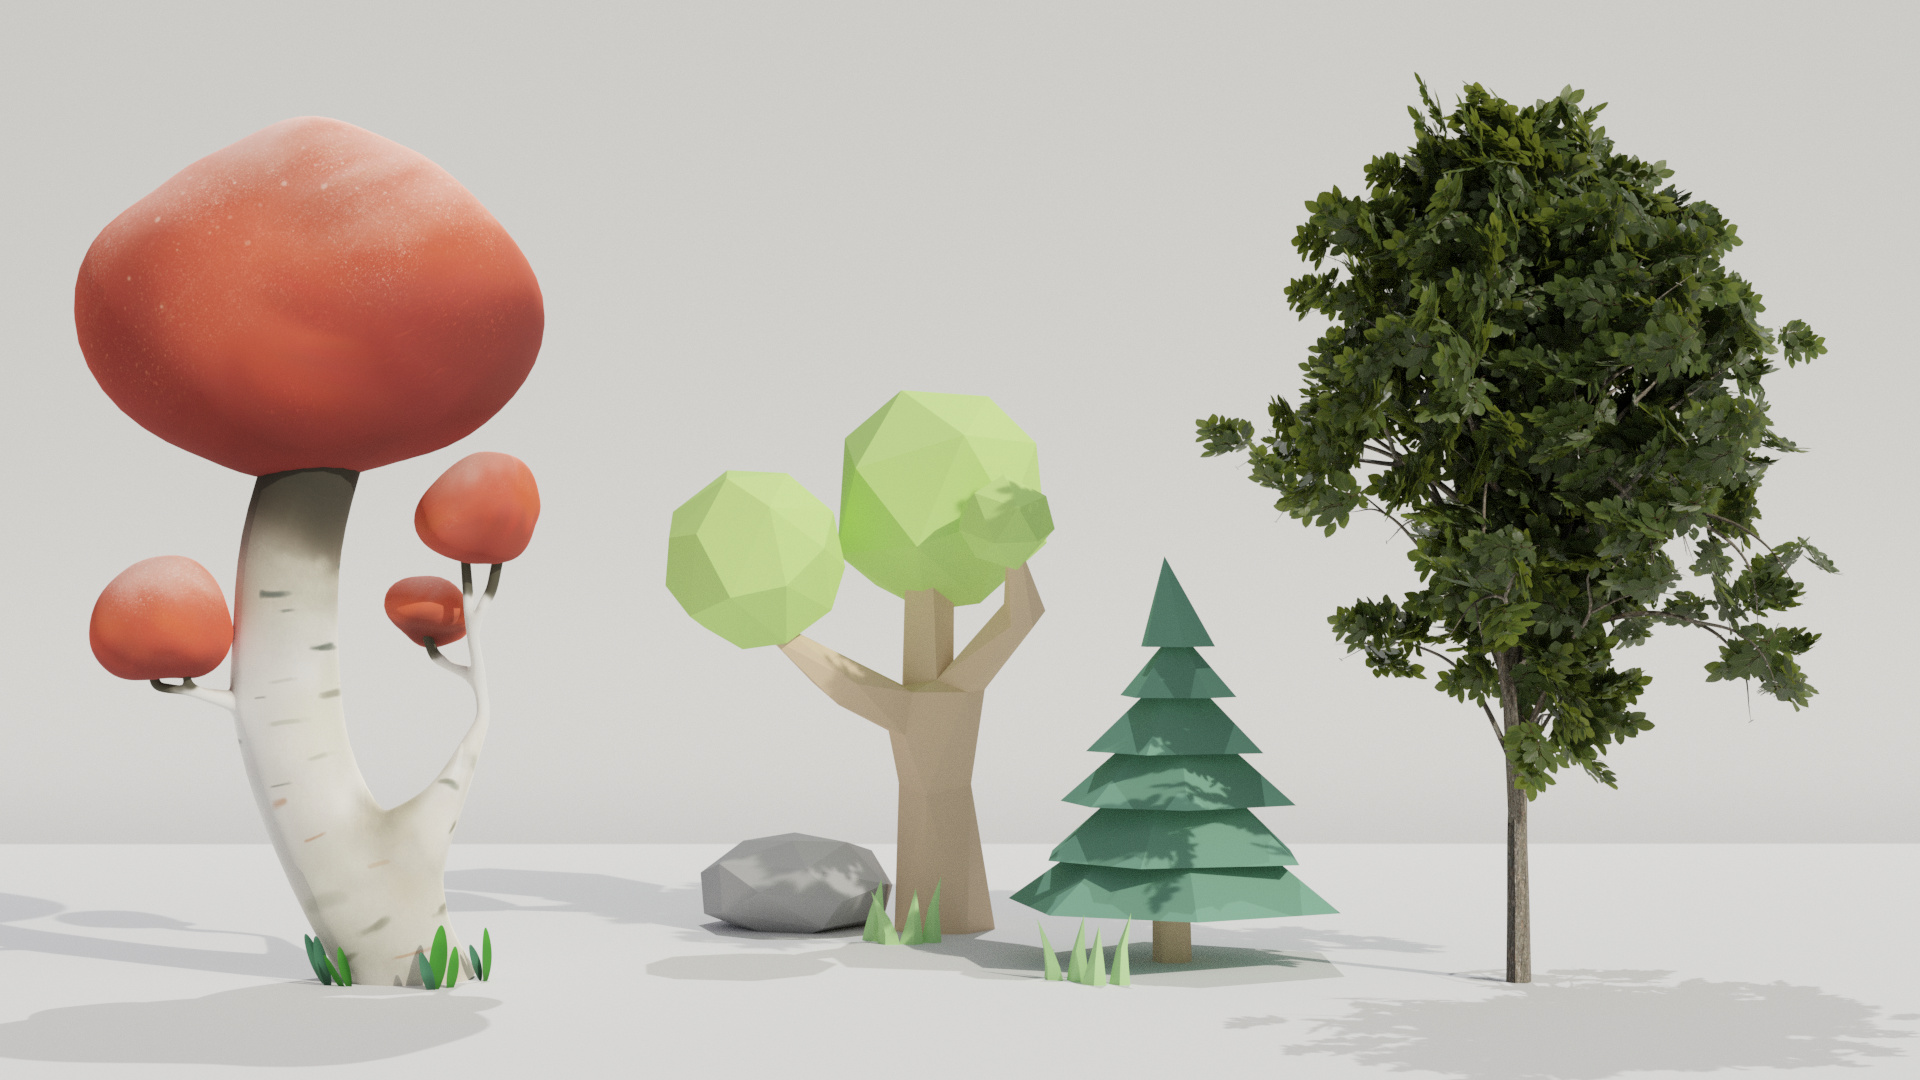 Blender course: Create 3 different styles of trees